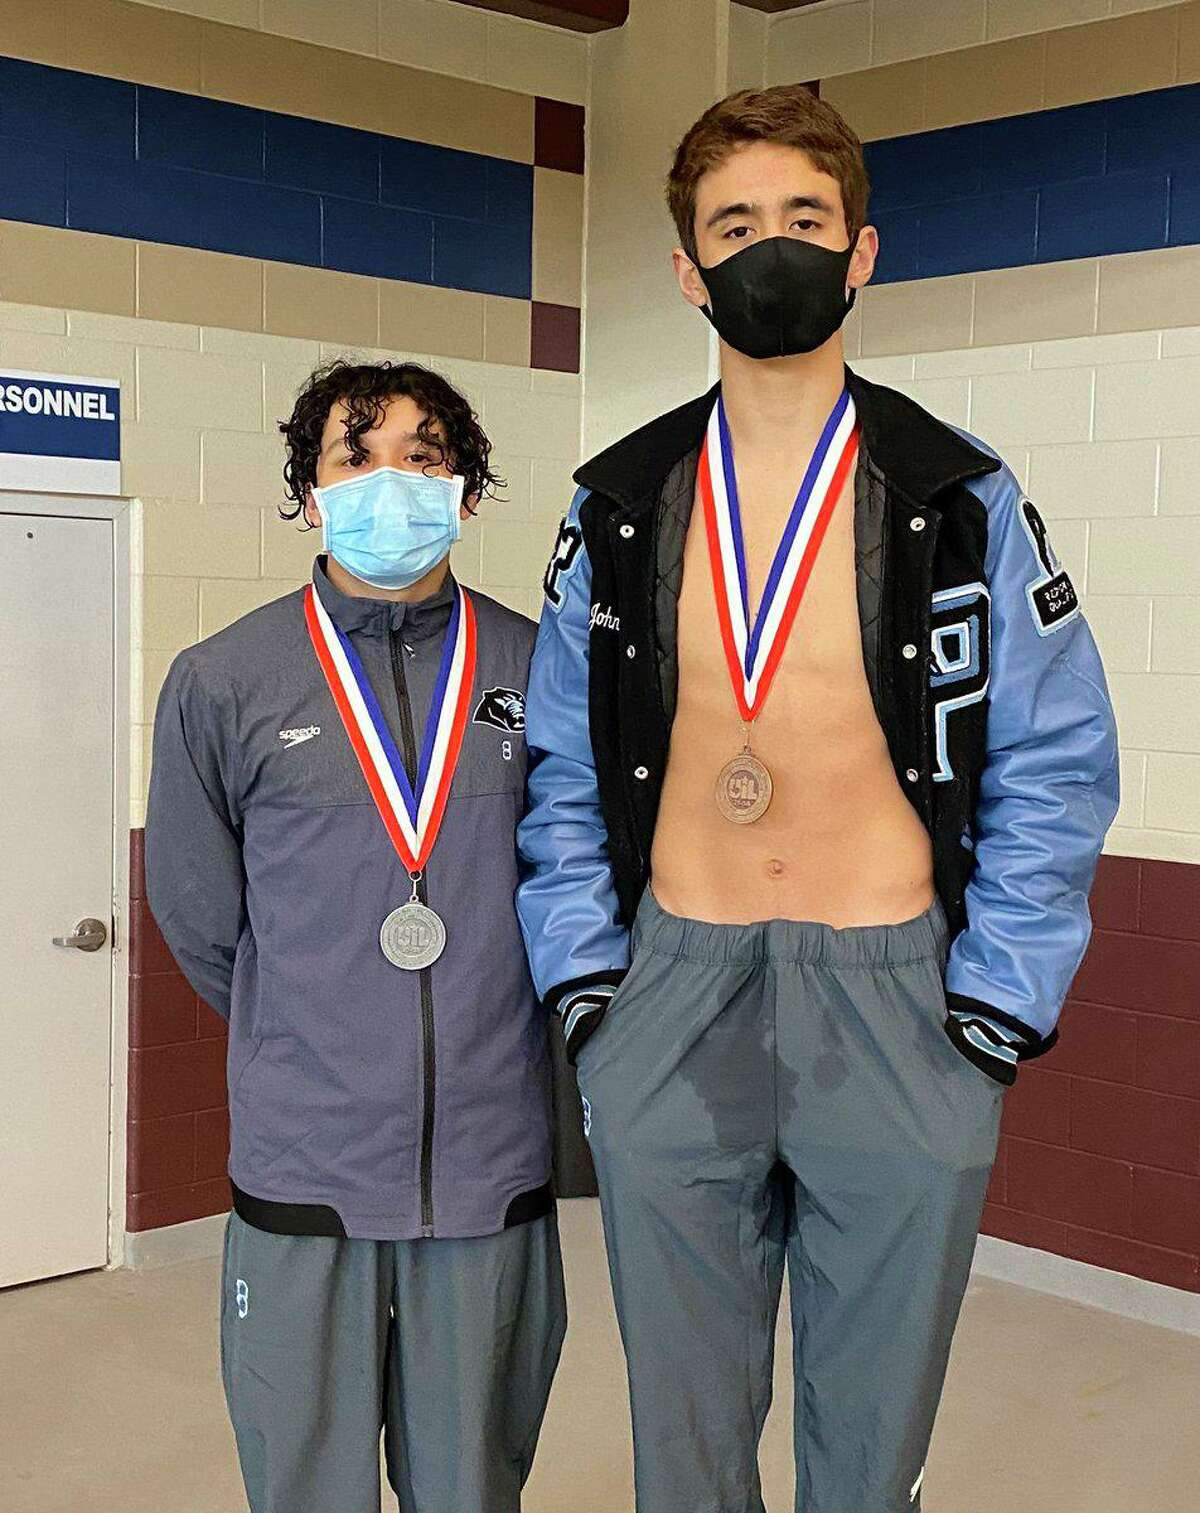 Paetow's Kalen Velazquez and Johnny Pleites finished second and third, respectively, in the 1-meter diving event at the District 21-5A championships. Both advance to the Region VI-5A meet.